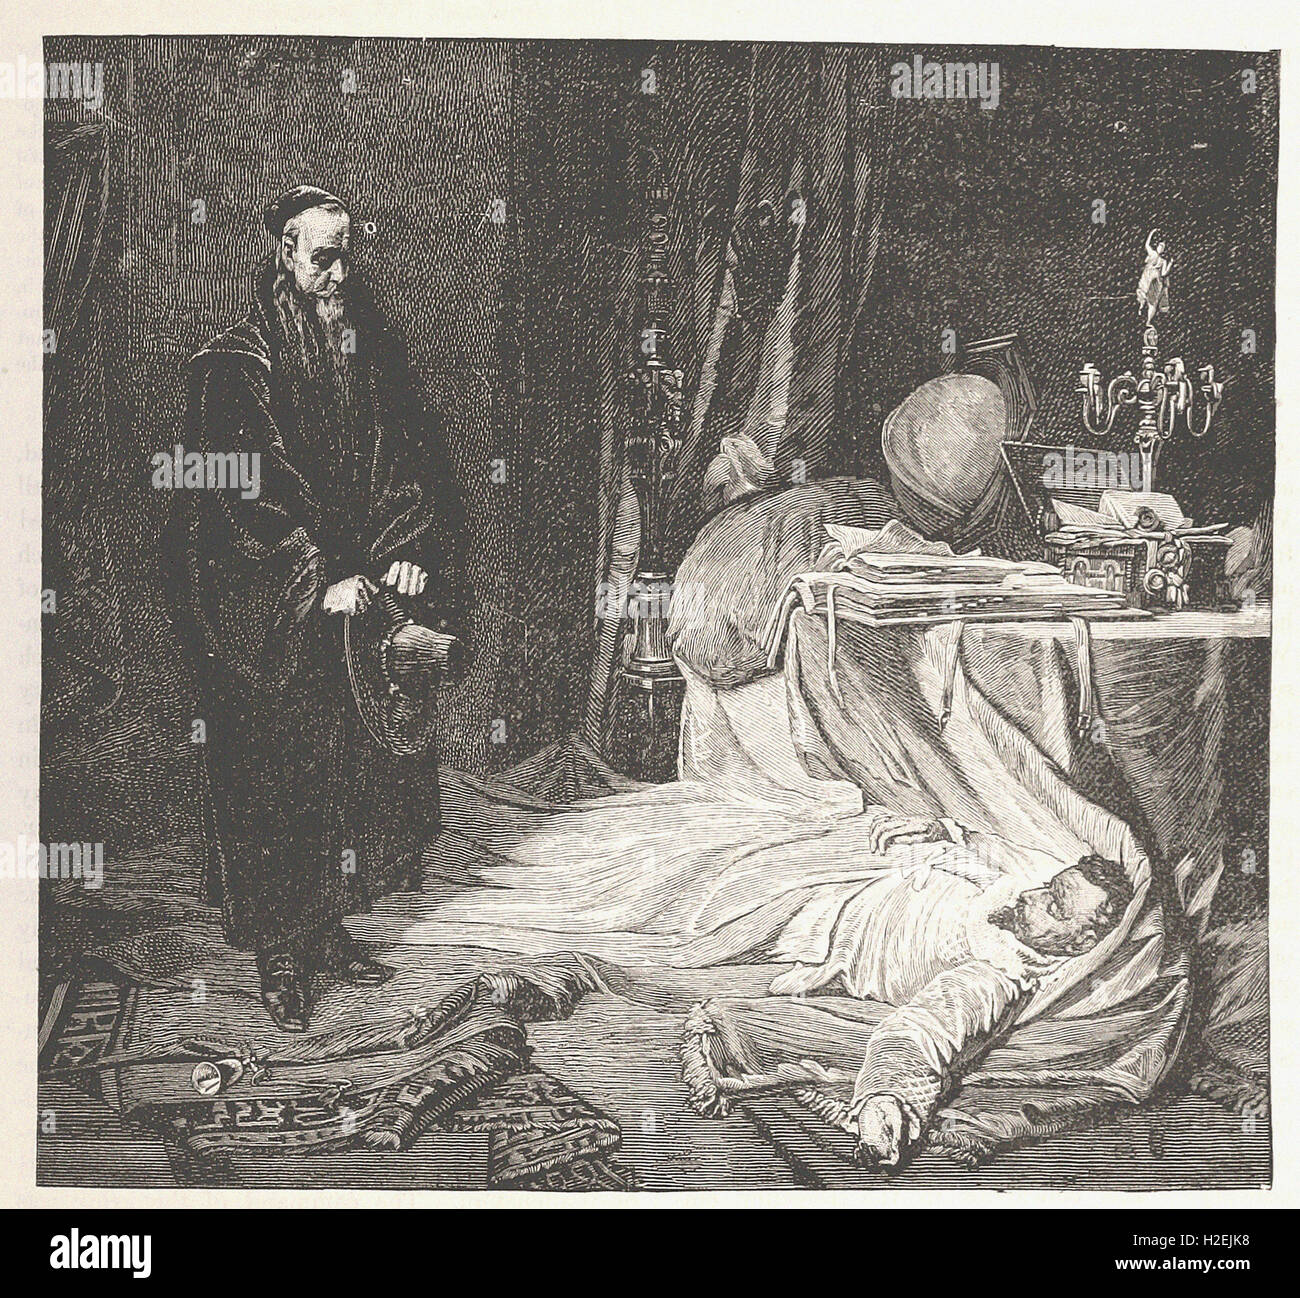 THE DEATH OF WALLENSTEIN - from 'Cassell's Illustrated Universal History' - 1882 - Stock Image